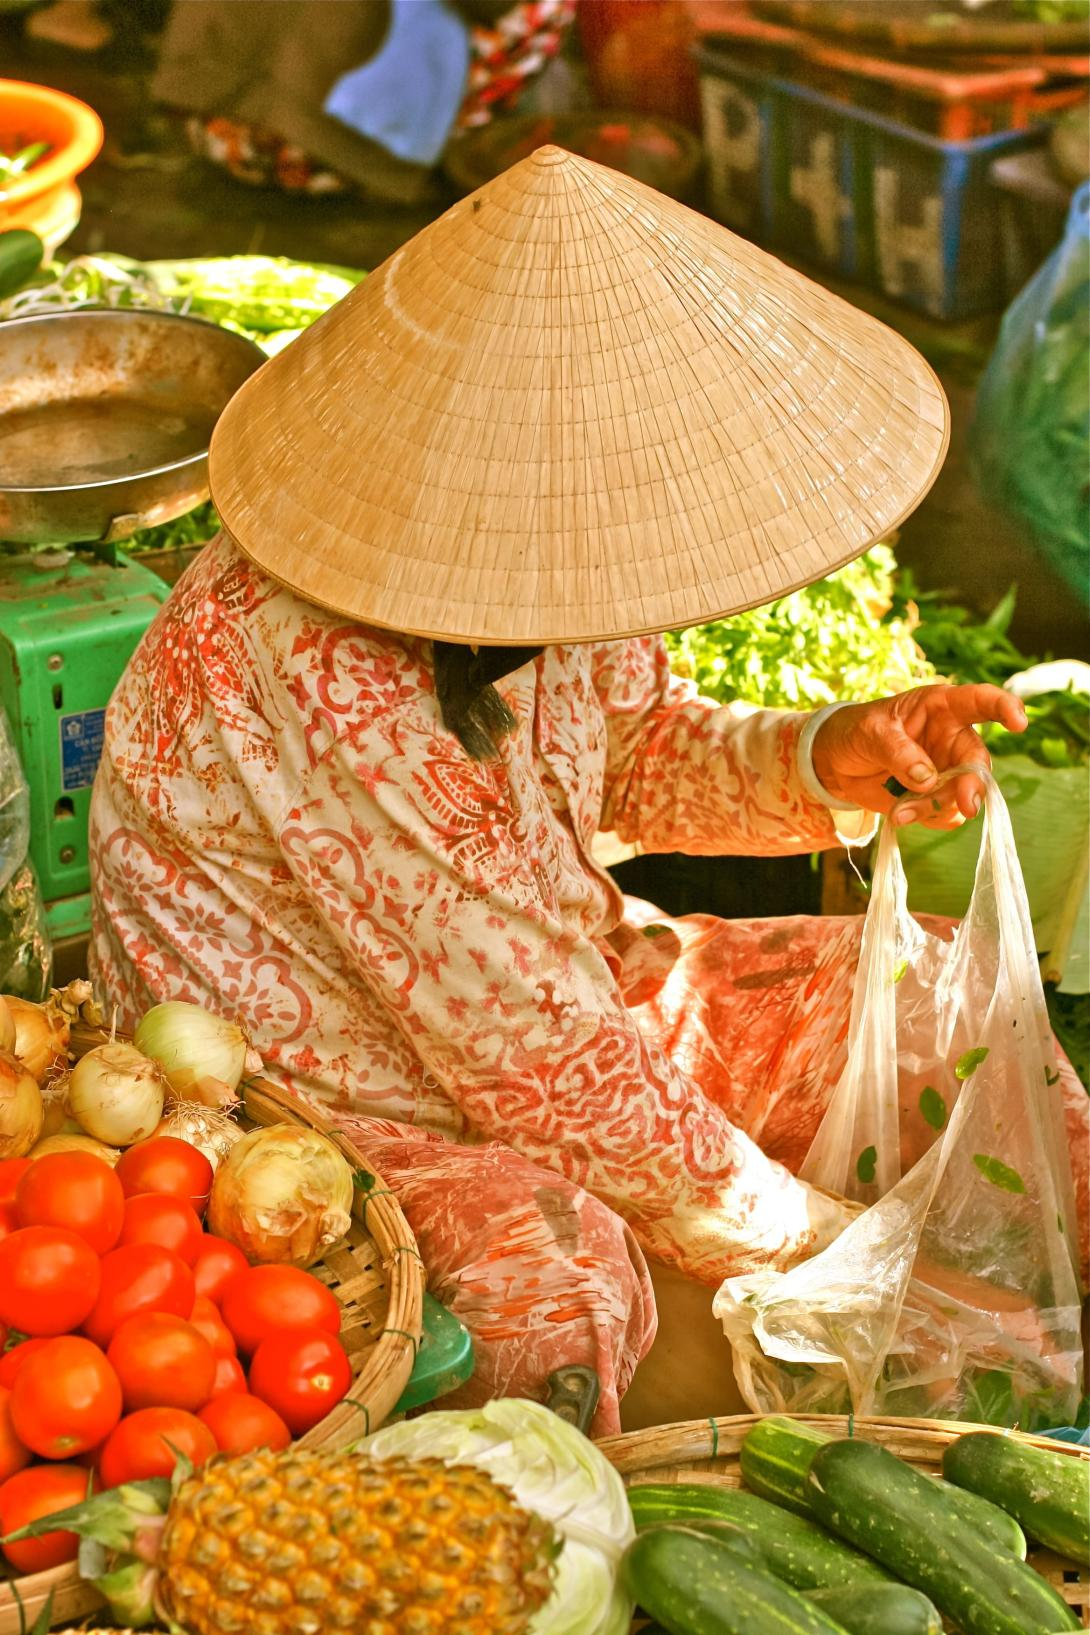 Hanoi street market vendor selling fruit and vegetables